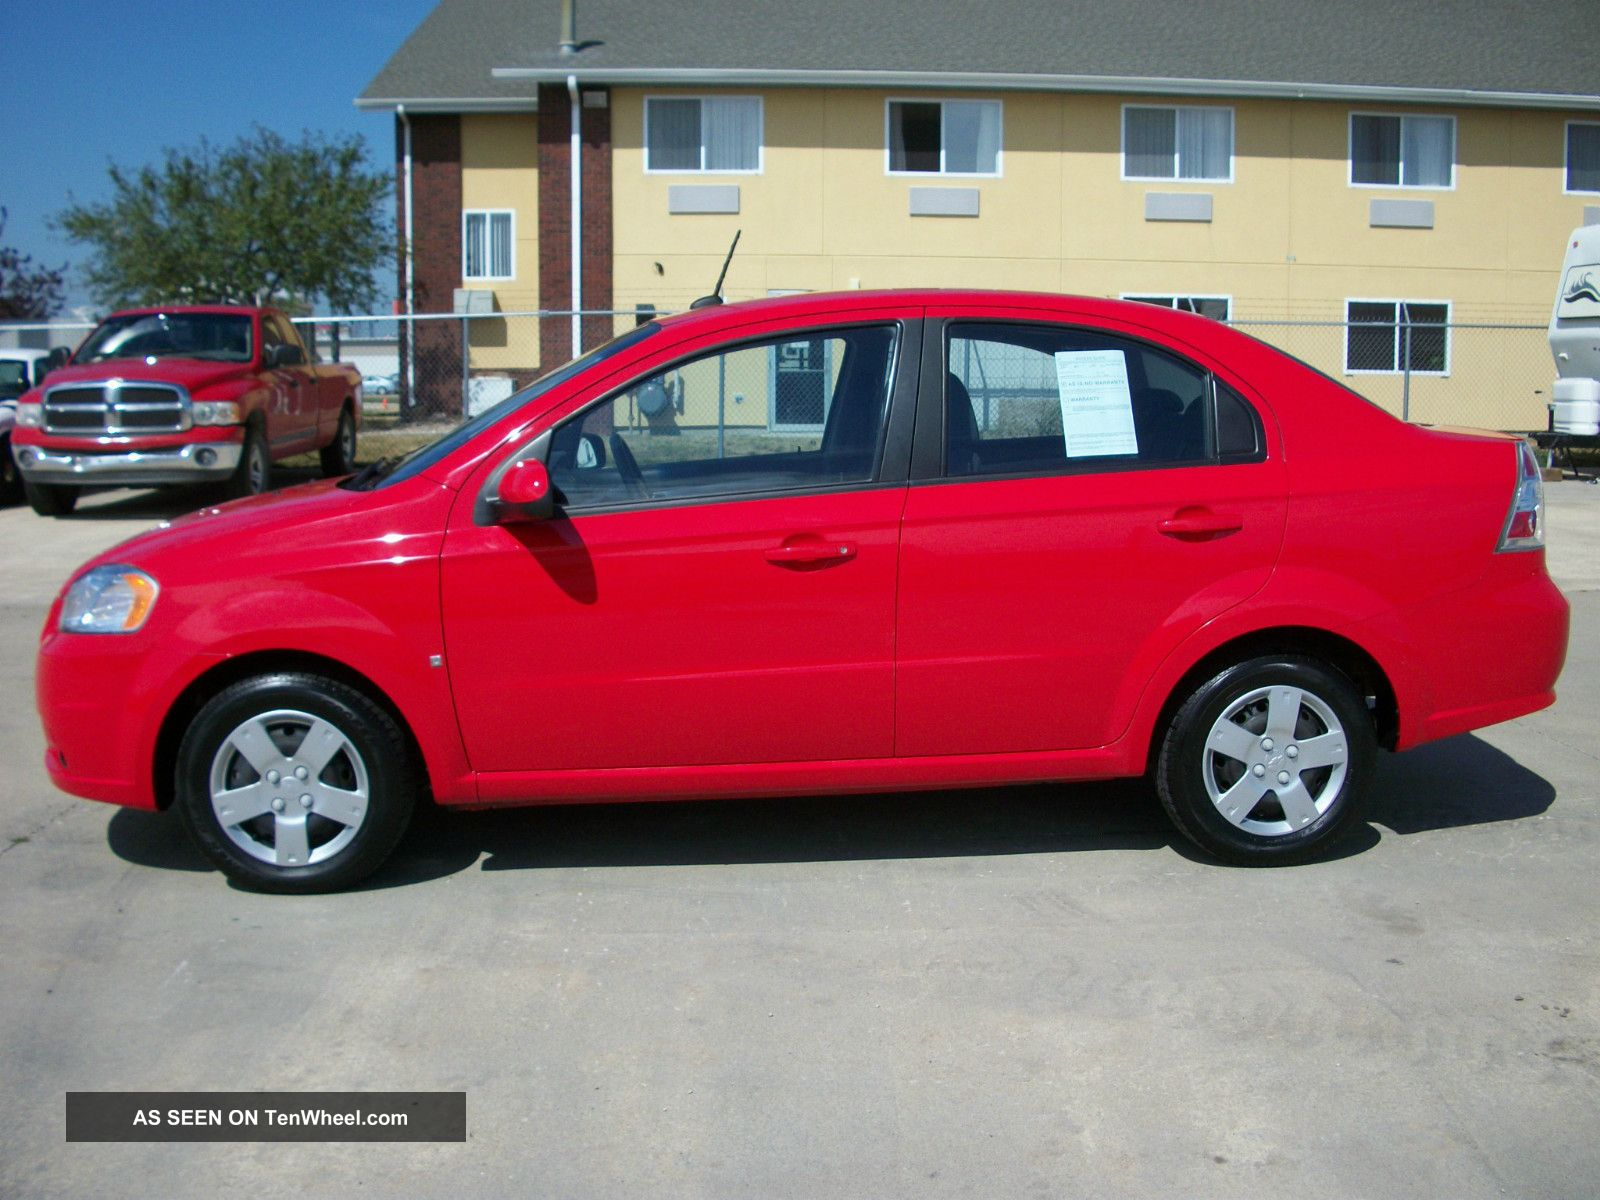 2009 Chevrolet Aveo Lt Sedan 5 Speed Manual Red